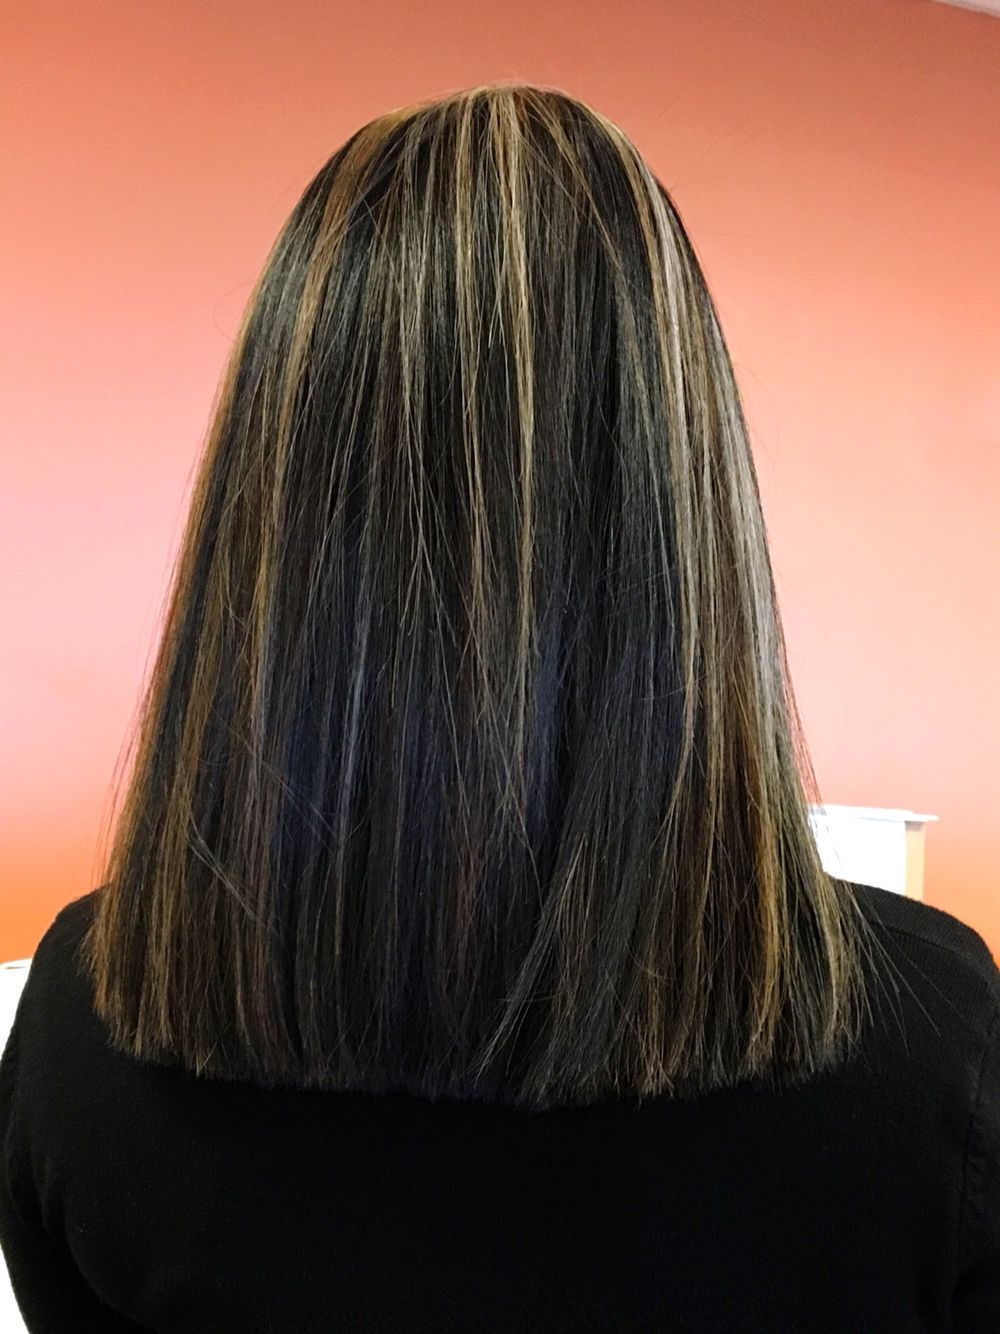 Black Hair With Blonde Highlights Bluntcut Blackhairwithhighlights Black Hair With Blonde Highlights Black Hair With Highlights Hair Styles